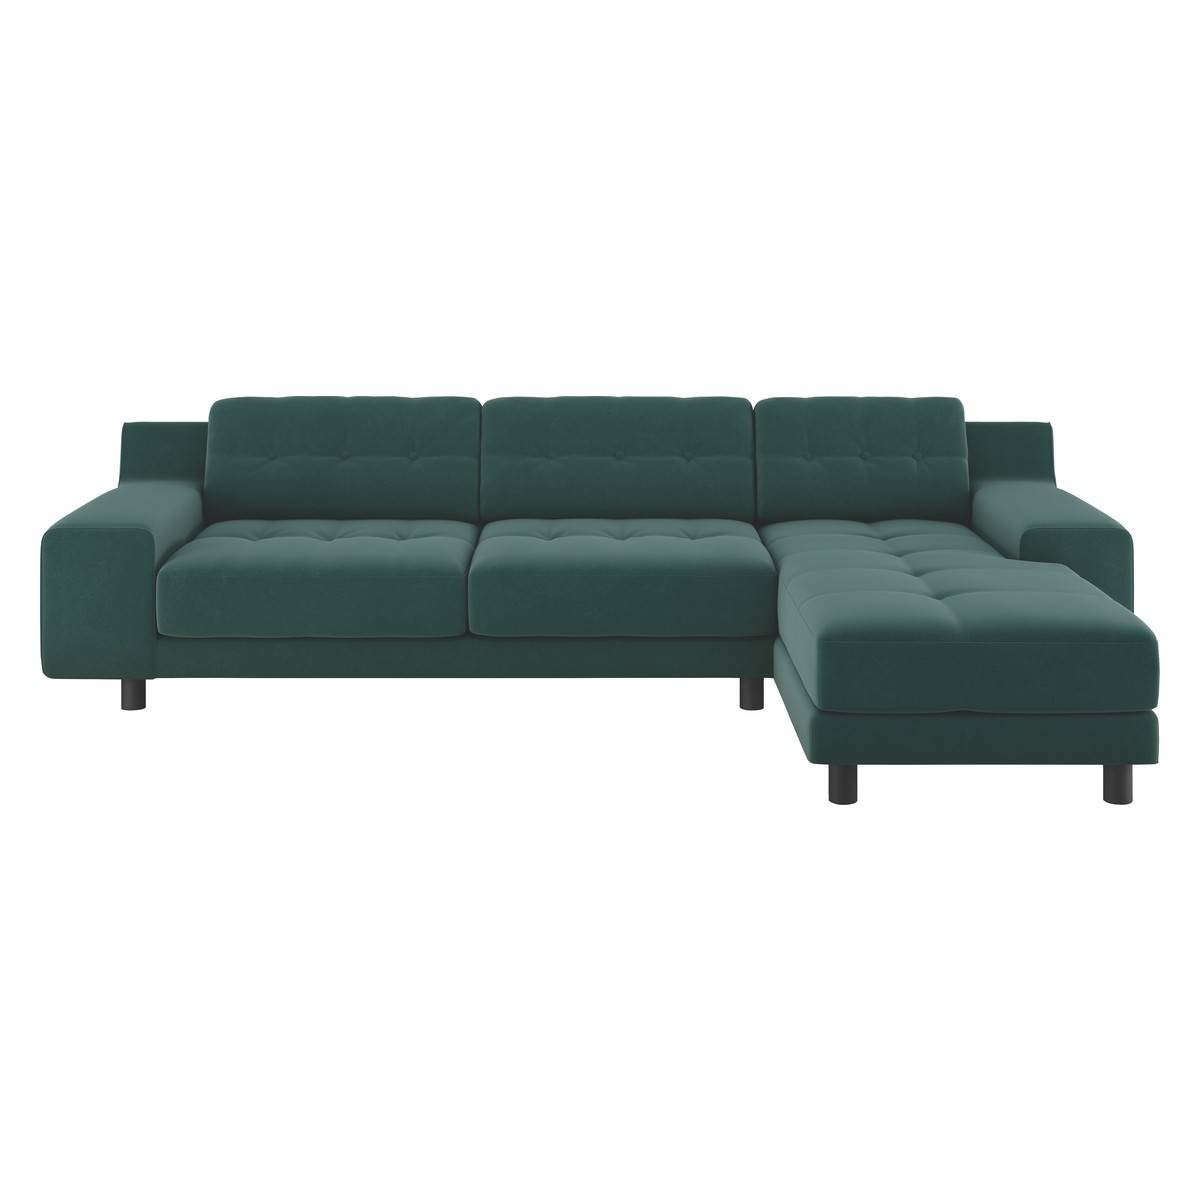 Corner Sofas; Leather & Fabric L-Shaped Styles - Habitat within Leather Corner Sofas (Image 10 of 30)